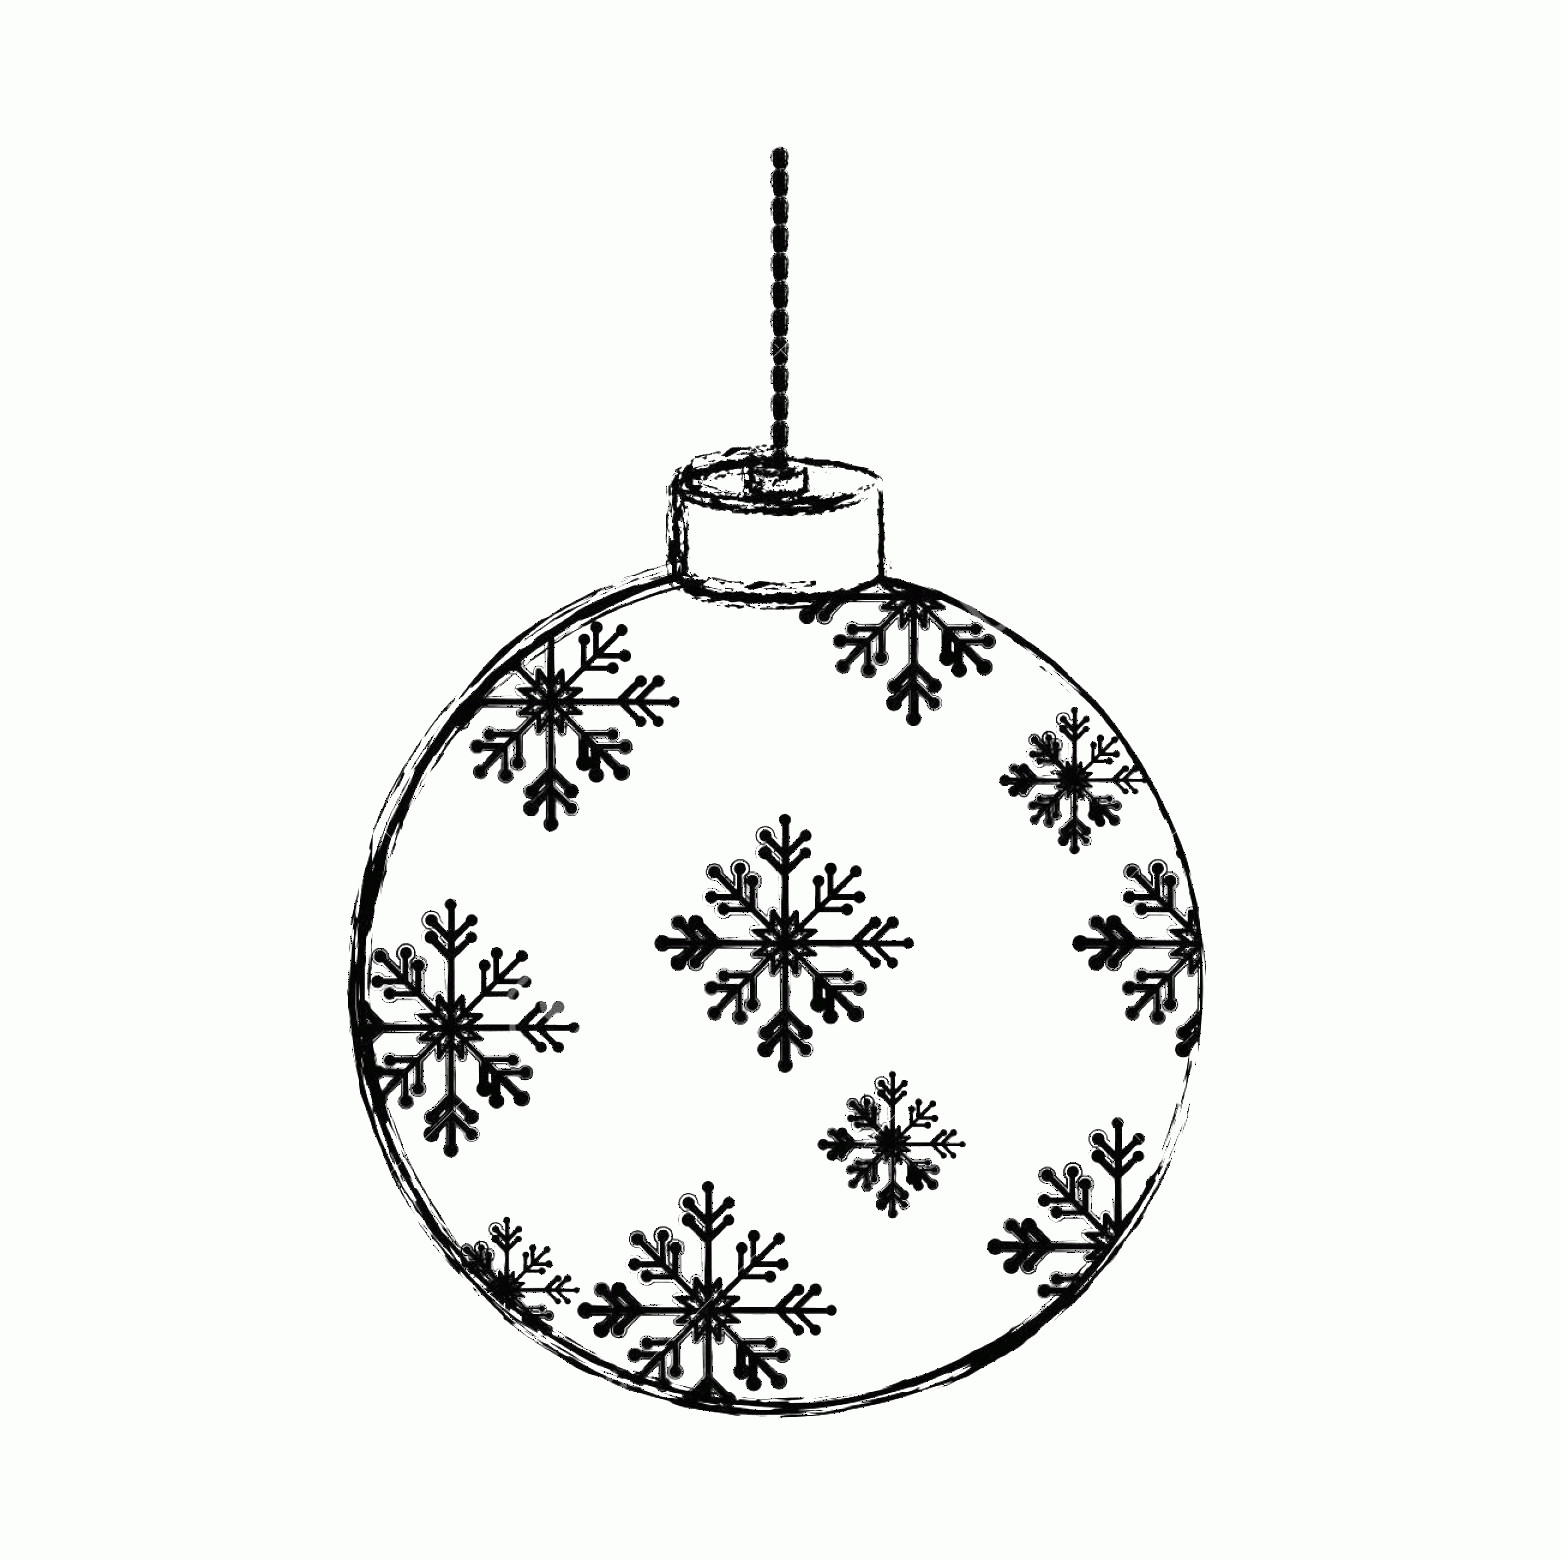 Black And White Christmas Ornament Vector Art: Christmas Tree Ornaments Clipart Black And White